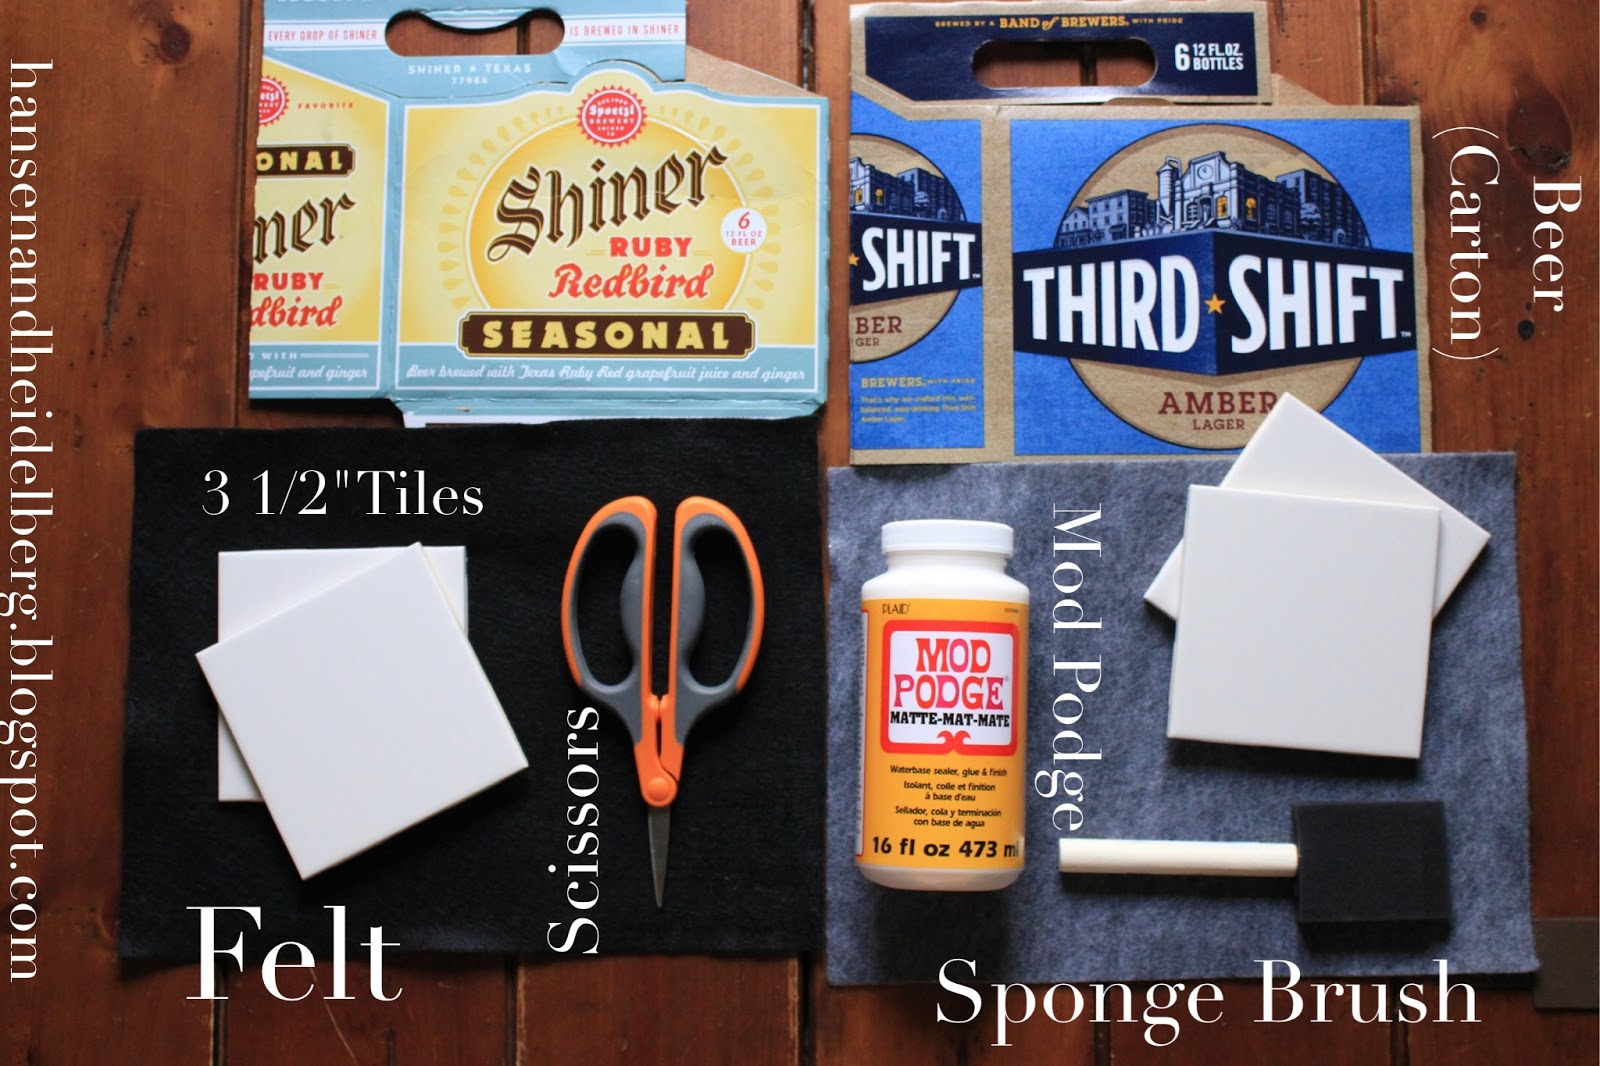 diy beer carton coasters, men's gifts, diy gifts